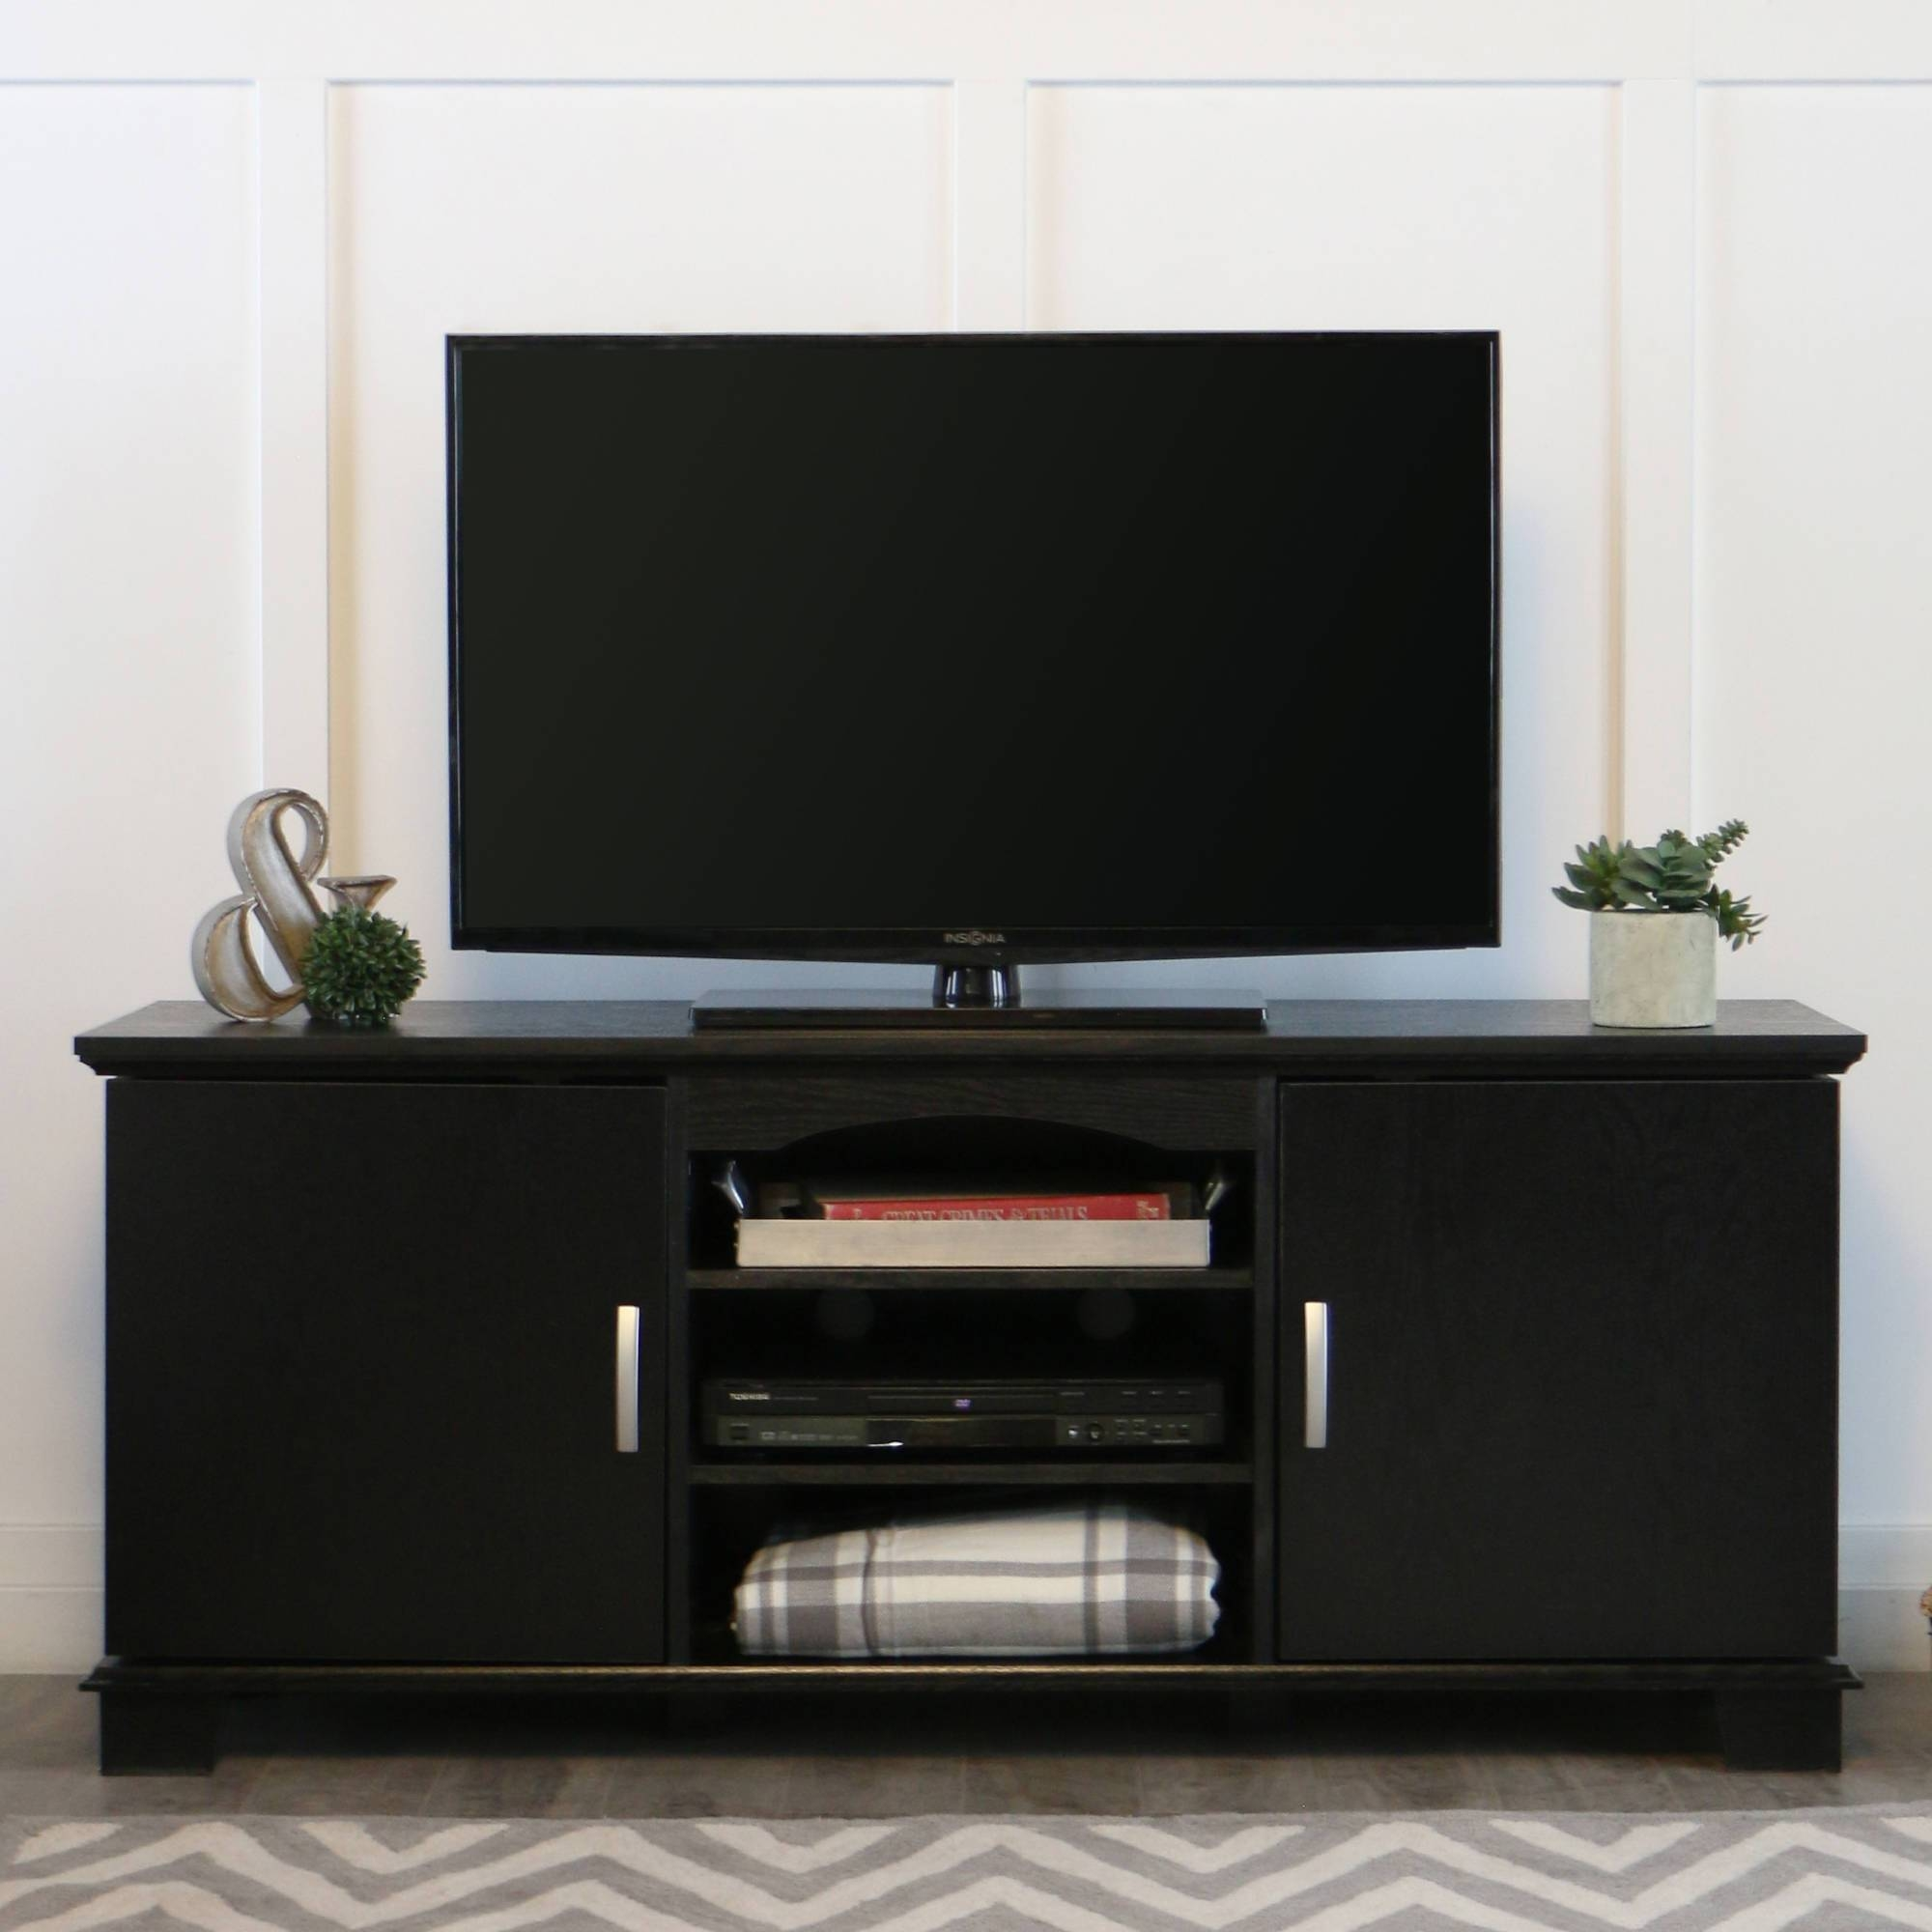 "Walker Edison Black Tv Stand For Tvs Up To 65"", Multiple Colors for Tv Stands for 70 Inch Tvs (Image 14 of 15)"